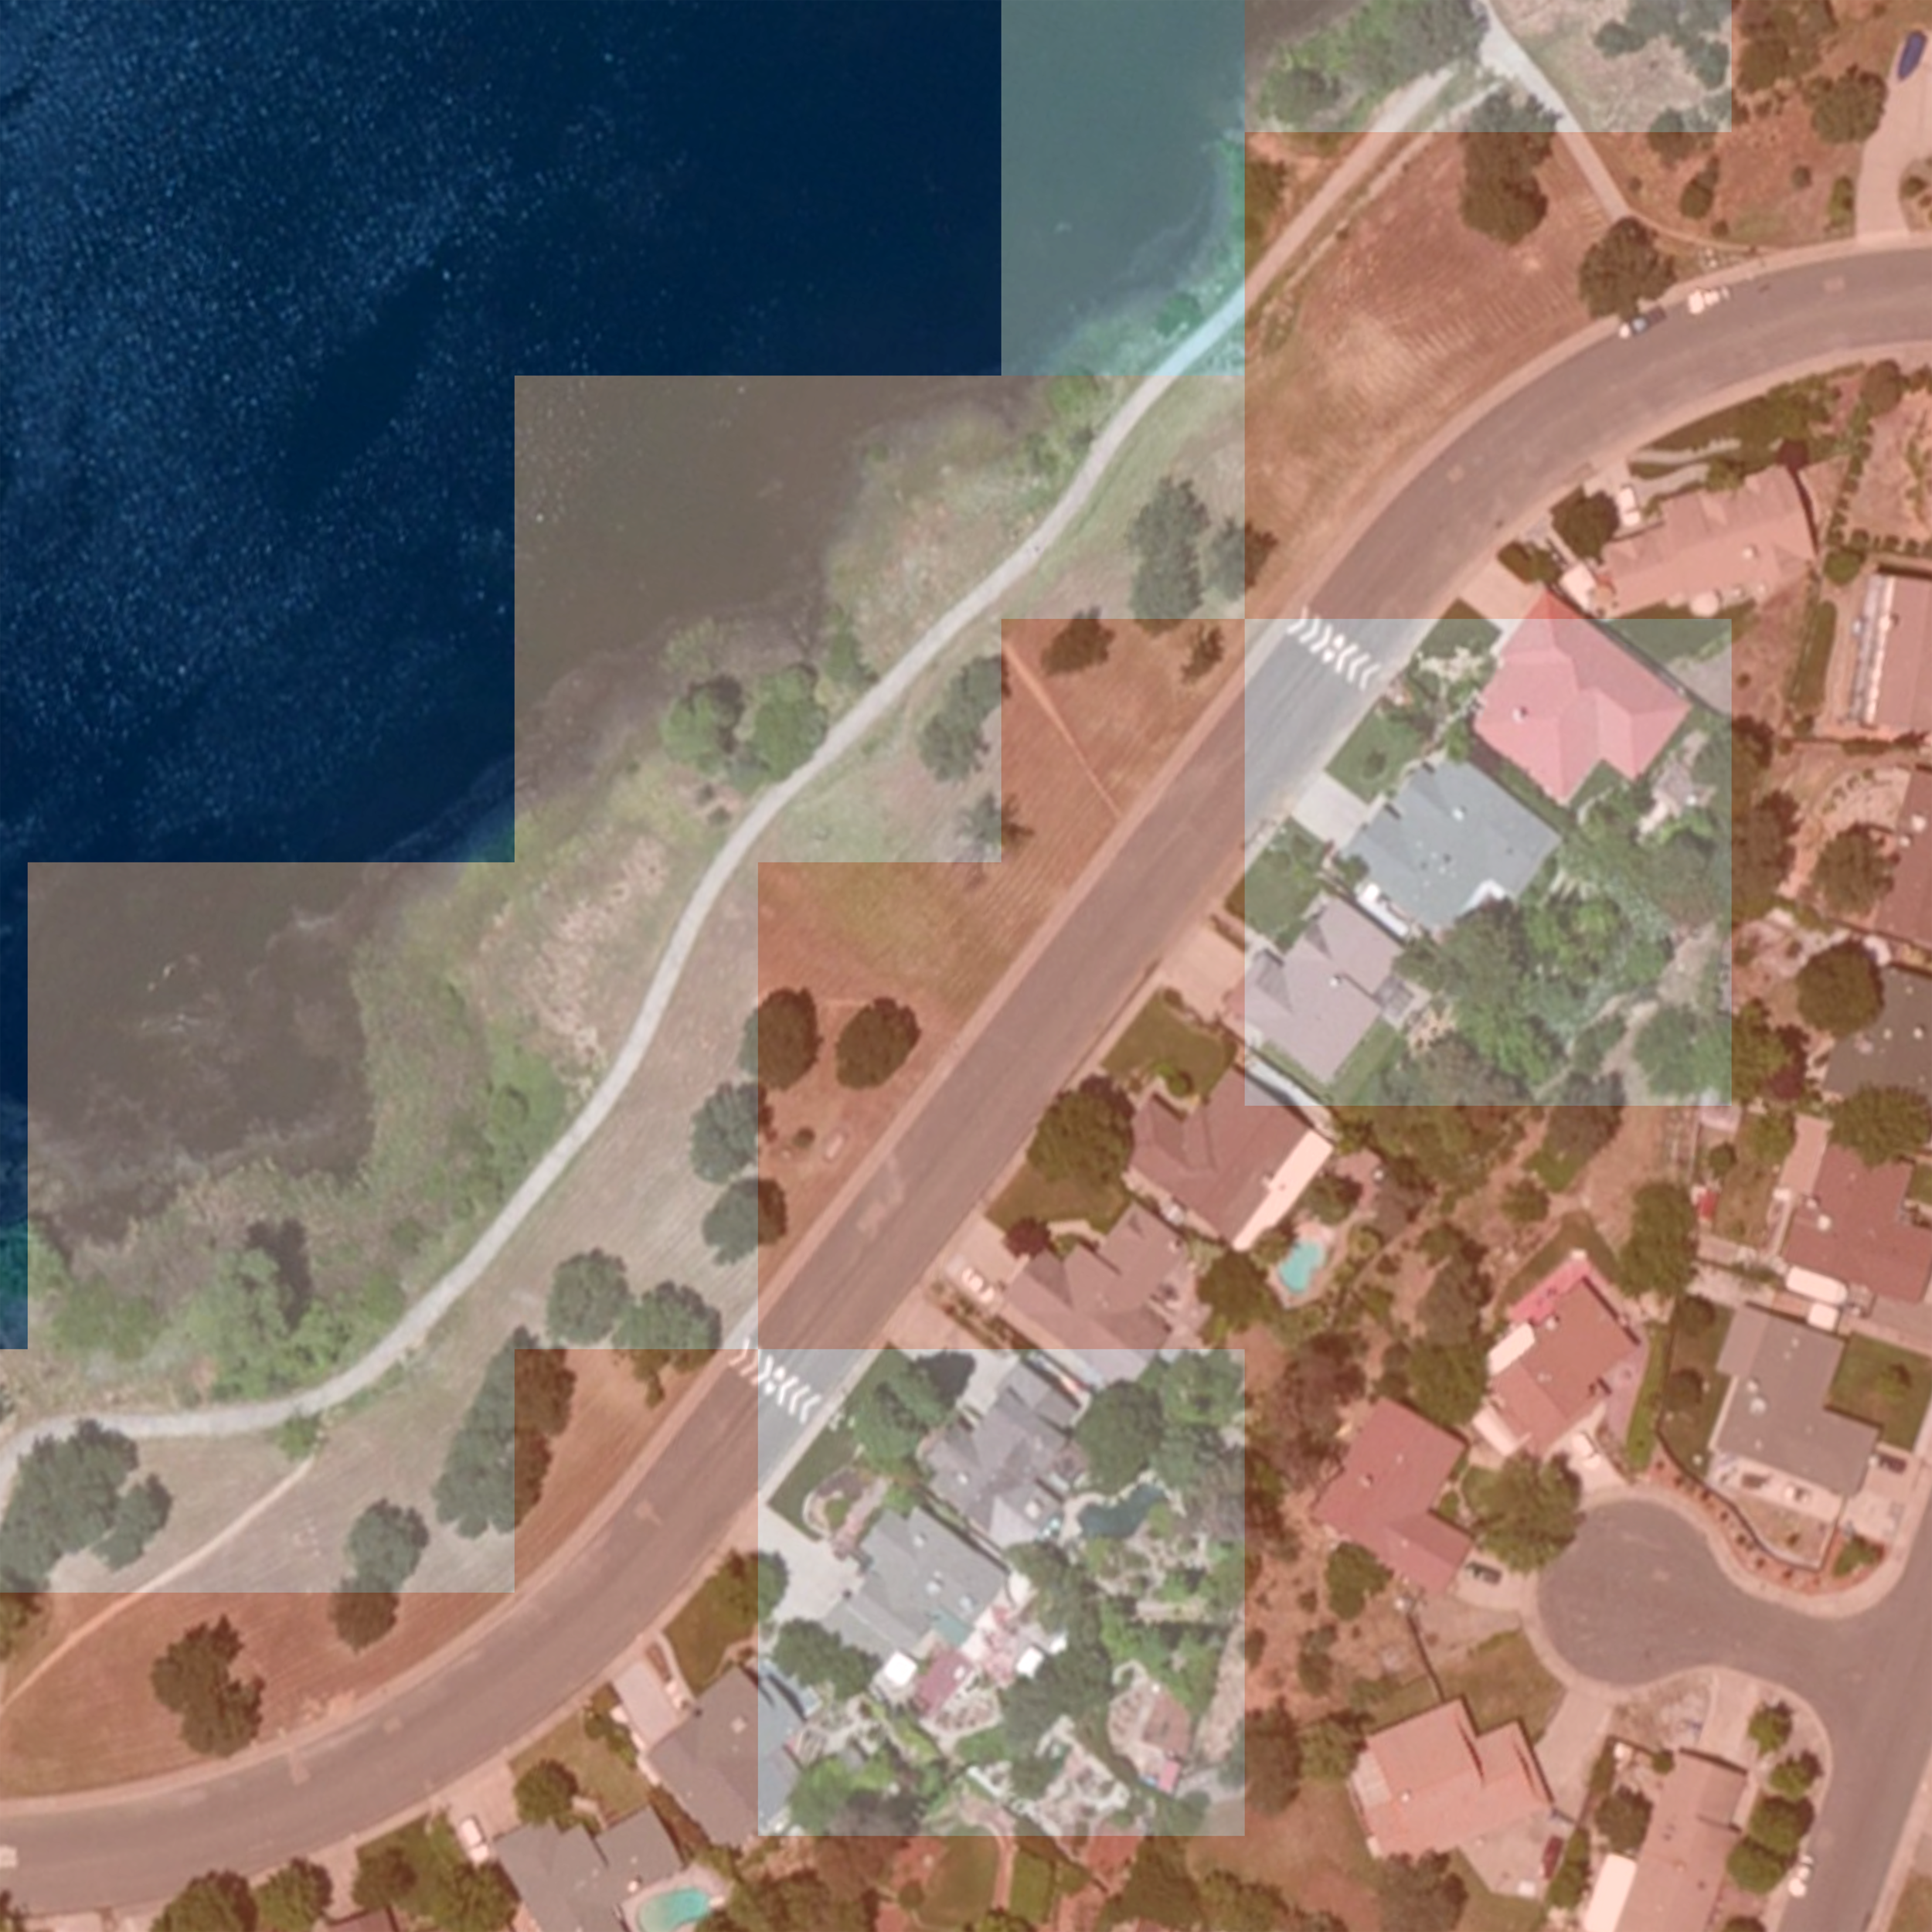 the resolution is tight enough to, more or less, capture the shape of urban development